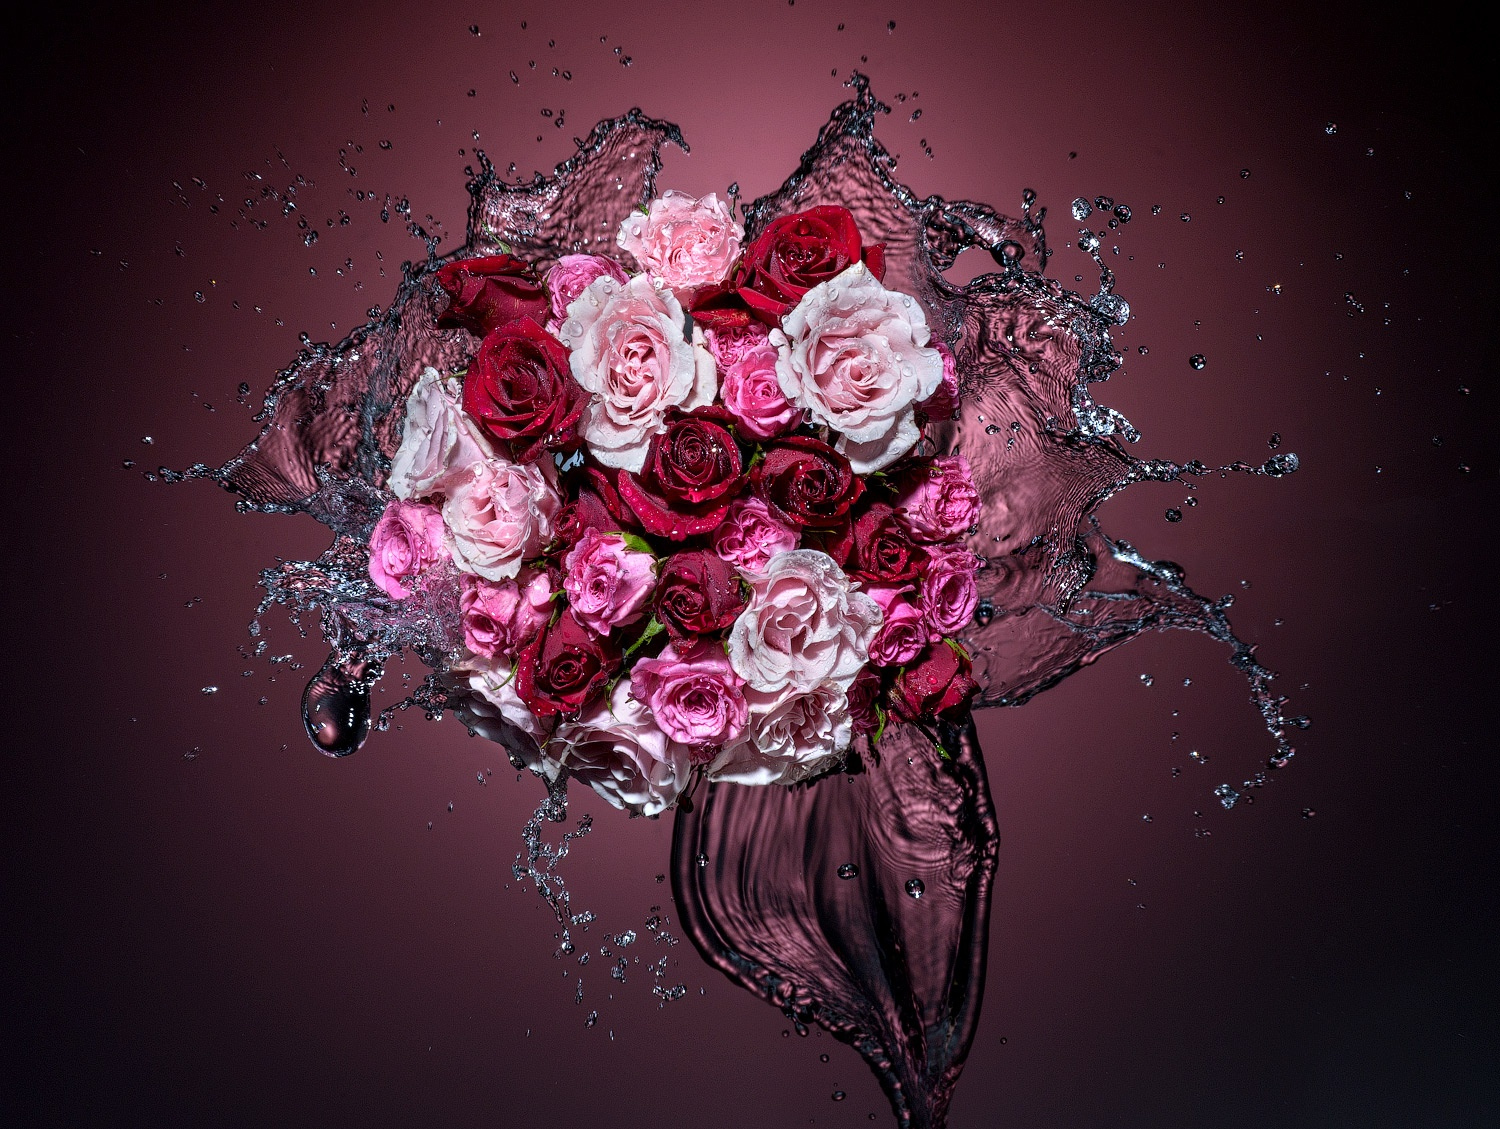 Splashing Roses: Behind the Scenes of a High-Speed Liquid Shot